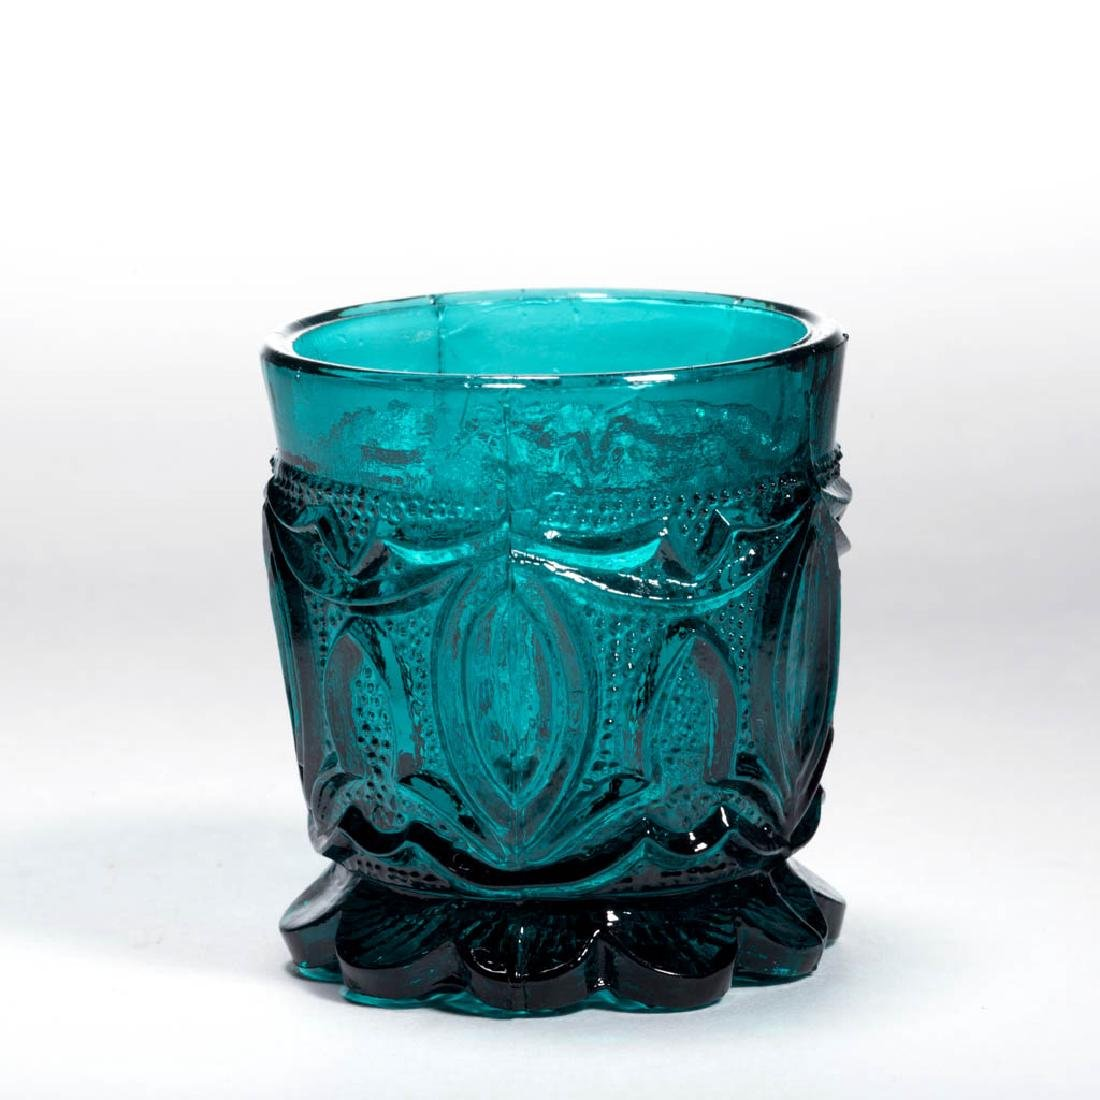 PRESSED LACY POINTED OVAL TOY TUMBLER